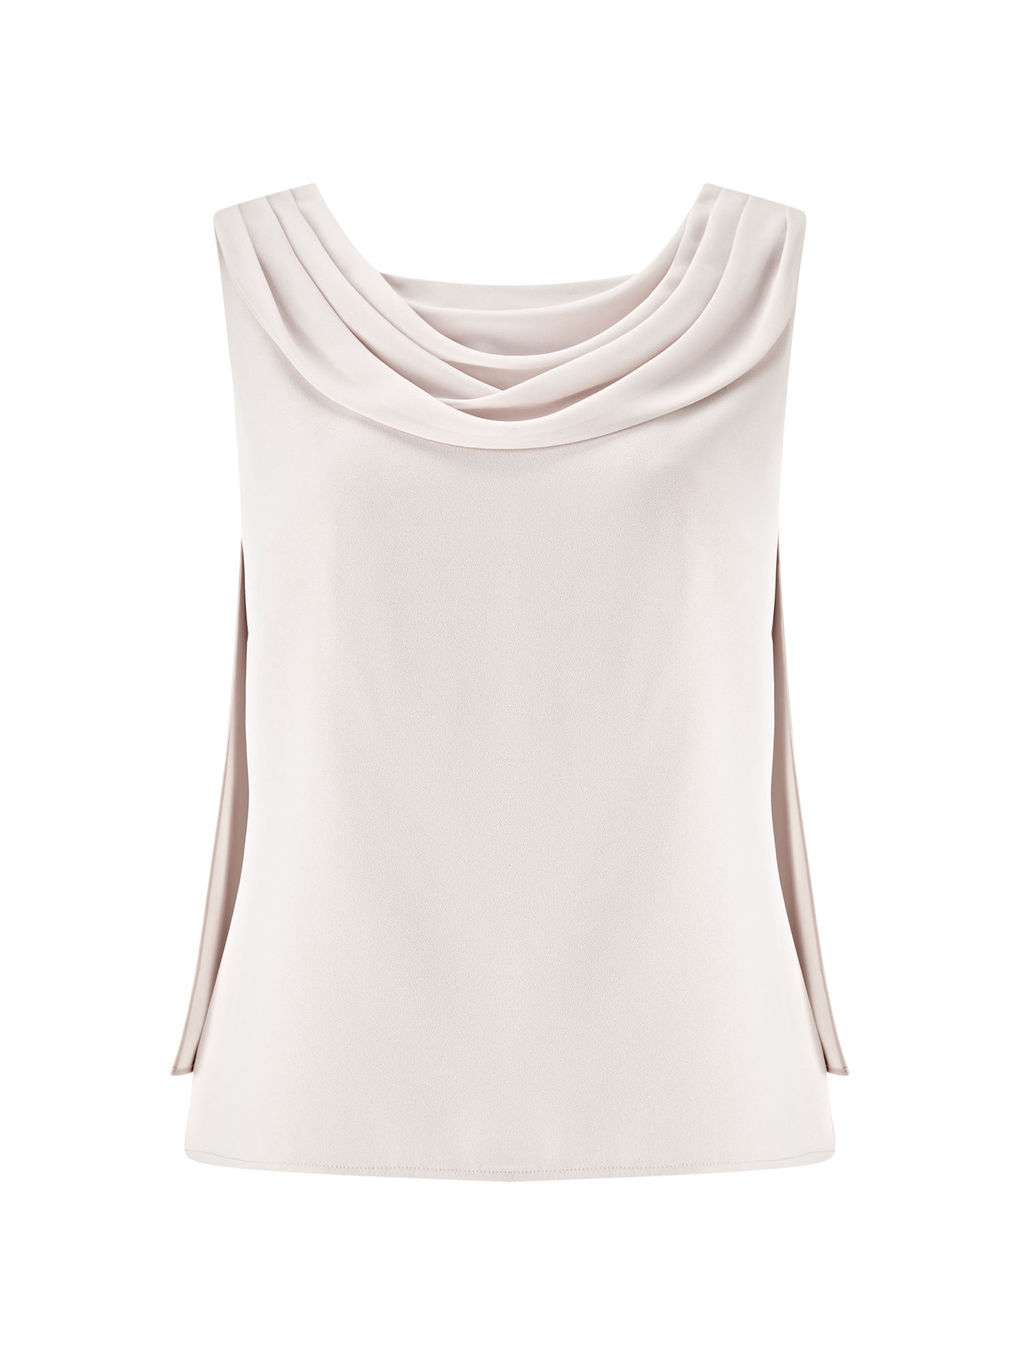 Drape Crepe Top, Soft Grey - neckline: cowl/draped neck; pattern: plain; sleeve style: sleeveless; predominant colour: stone; occasions: evening, occasion; length: standard; style: top; fibres: polyester/polyamide - 100%; fit: body skimming; sleeve length: sleeveless; texture group: crepes; pattern type: fabric; season: s/s 2016; wardrobe: event